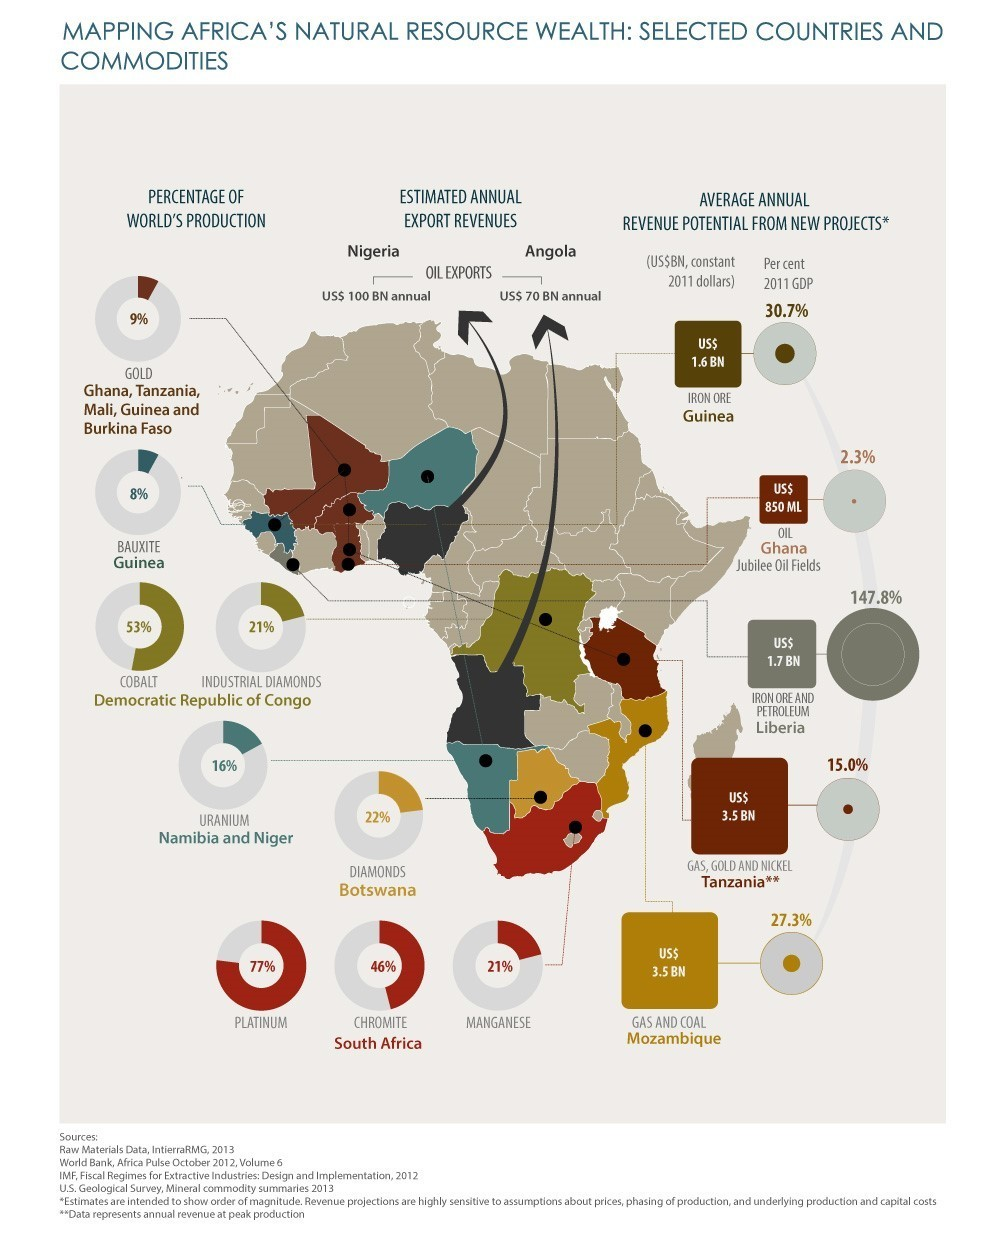 Africa's natural resource wealth